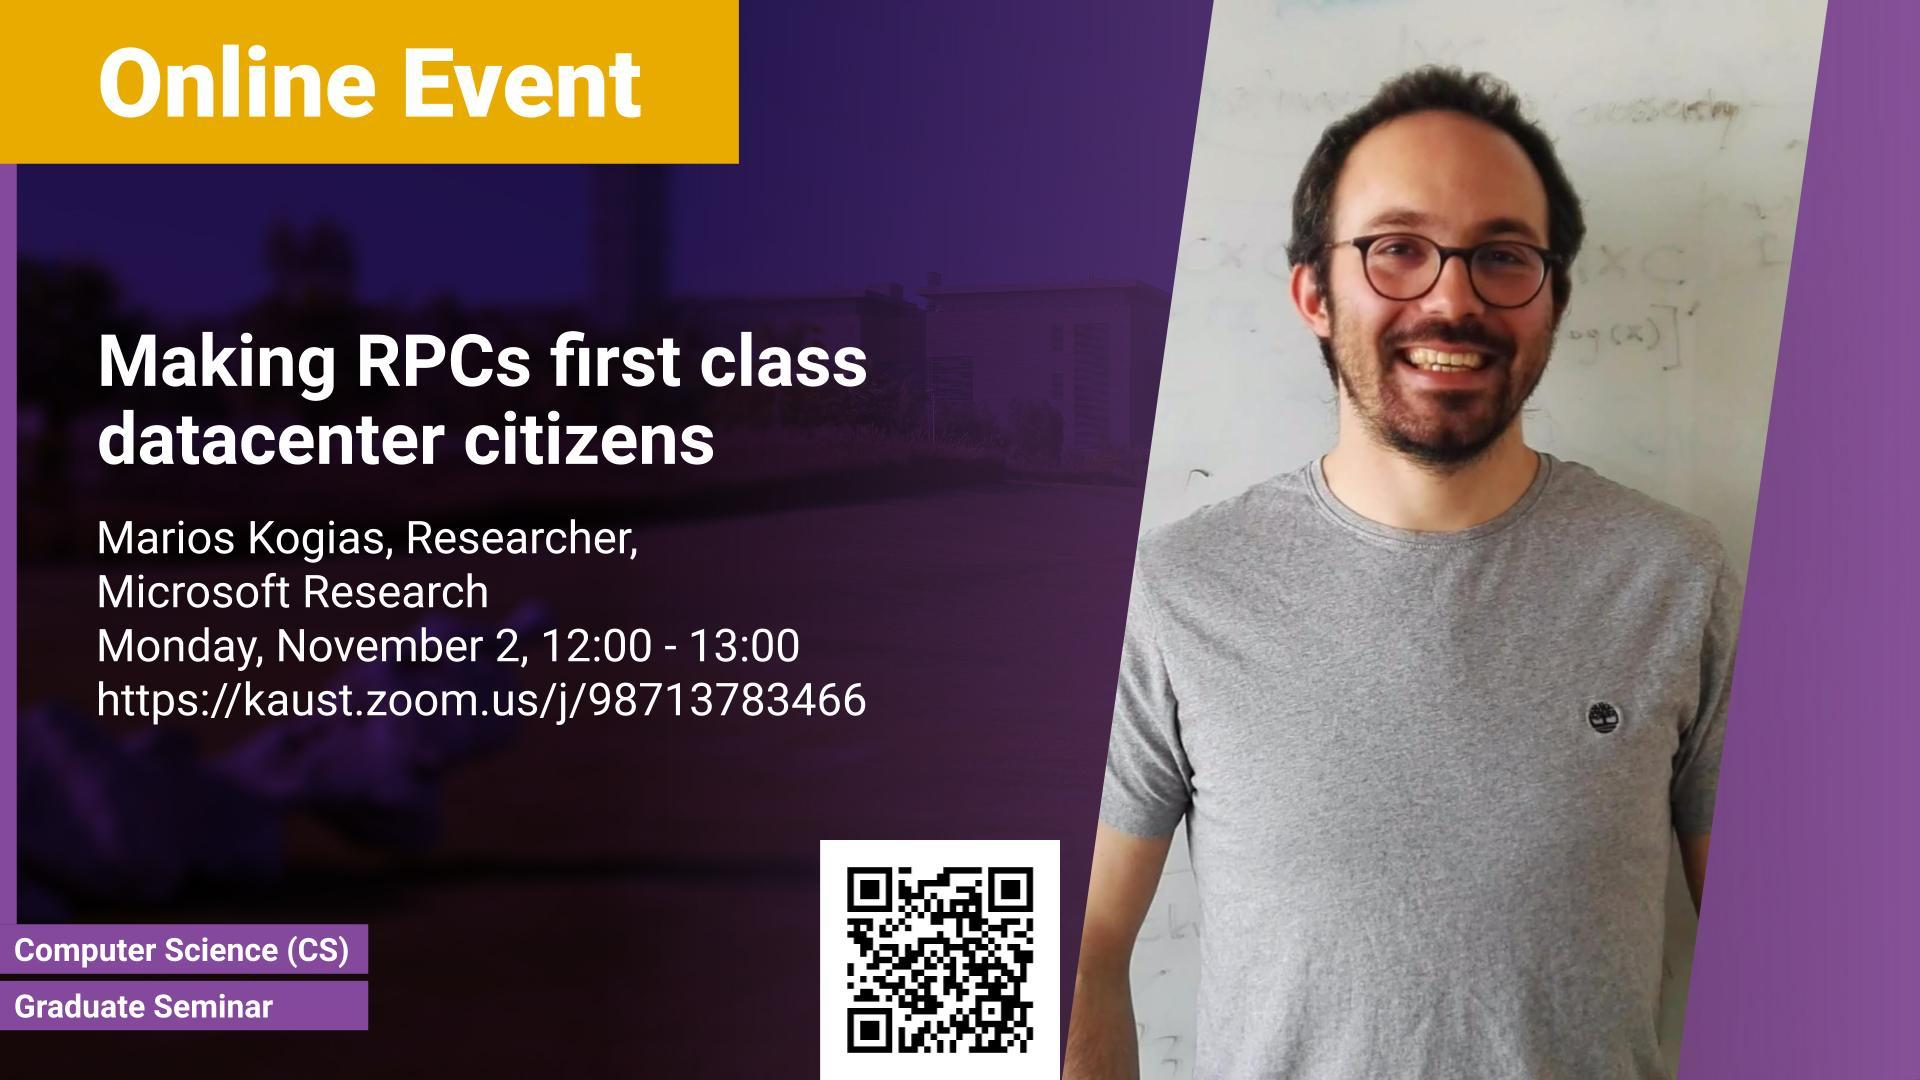 KAUST CEMSE CS Graduate Seminar Marios Kogias Making RPCs First Class Datacenter Citizens